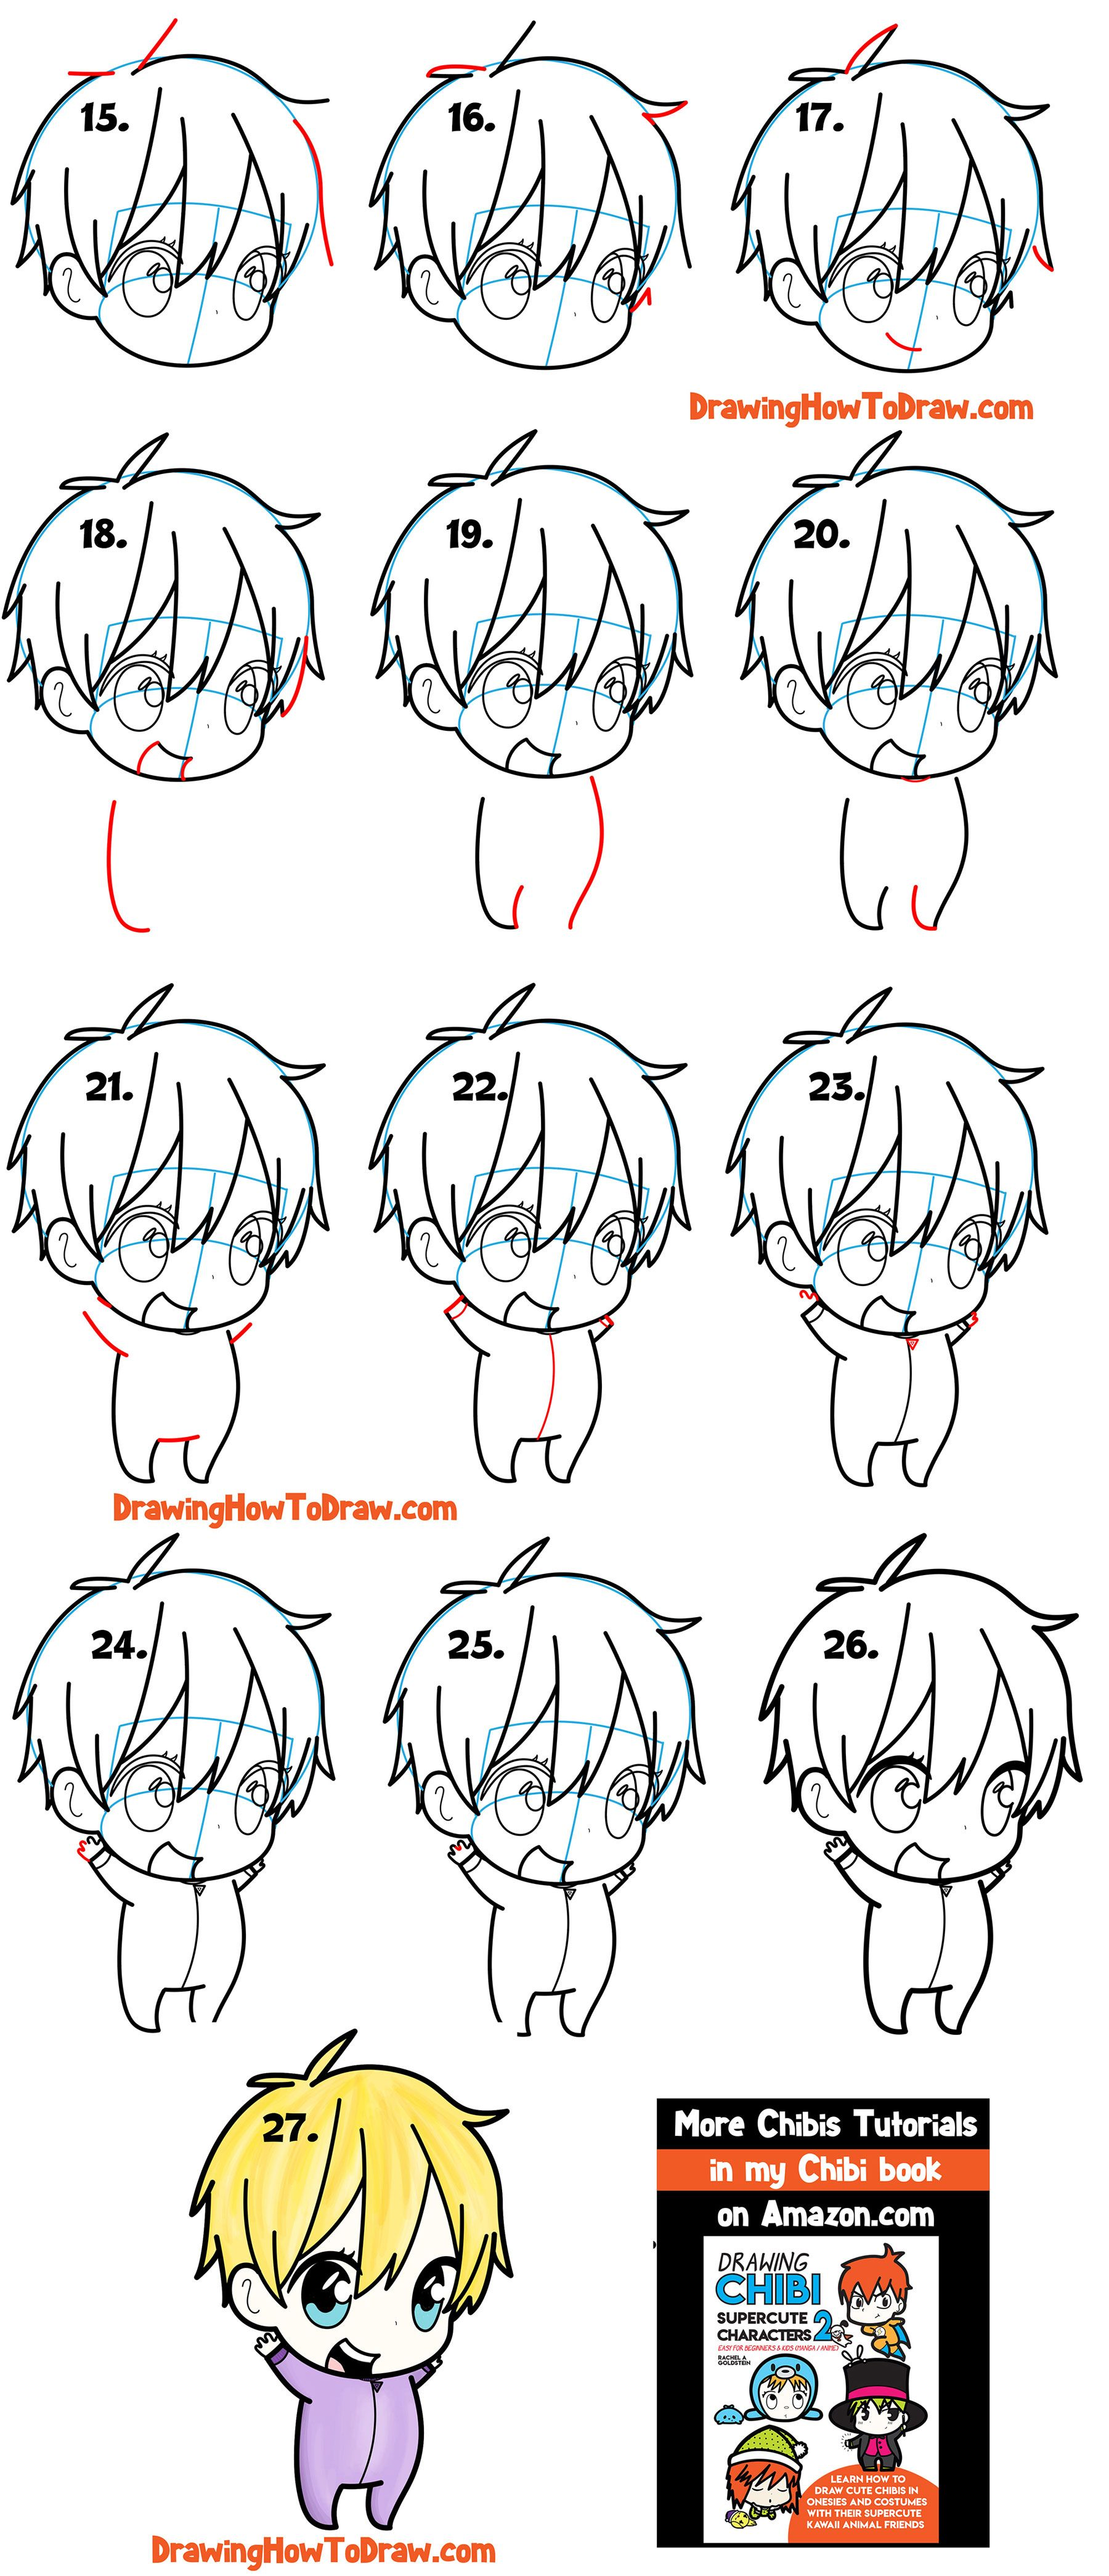 How To Draw A Cute Chibi Boy Easy Step By Step Drawing Tutorial For Kids Beginners How To Draw Step By Step Drawing Tutorials Chibi Boy Drawing Tutorials For